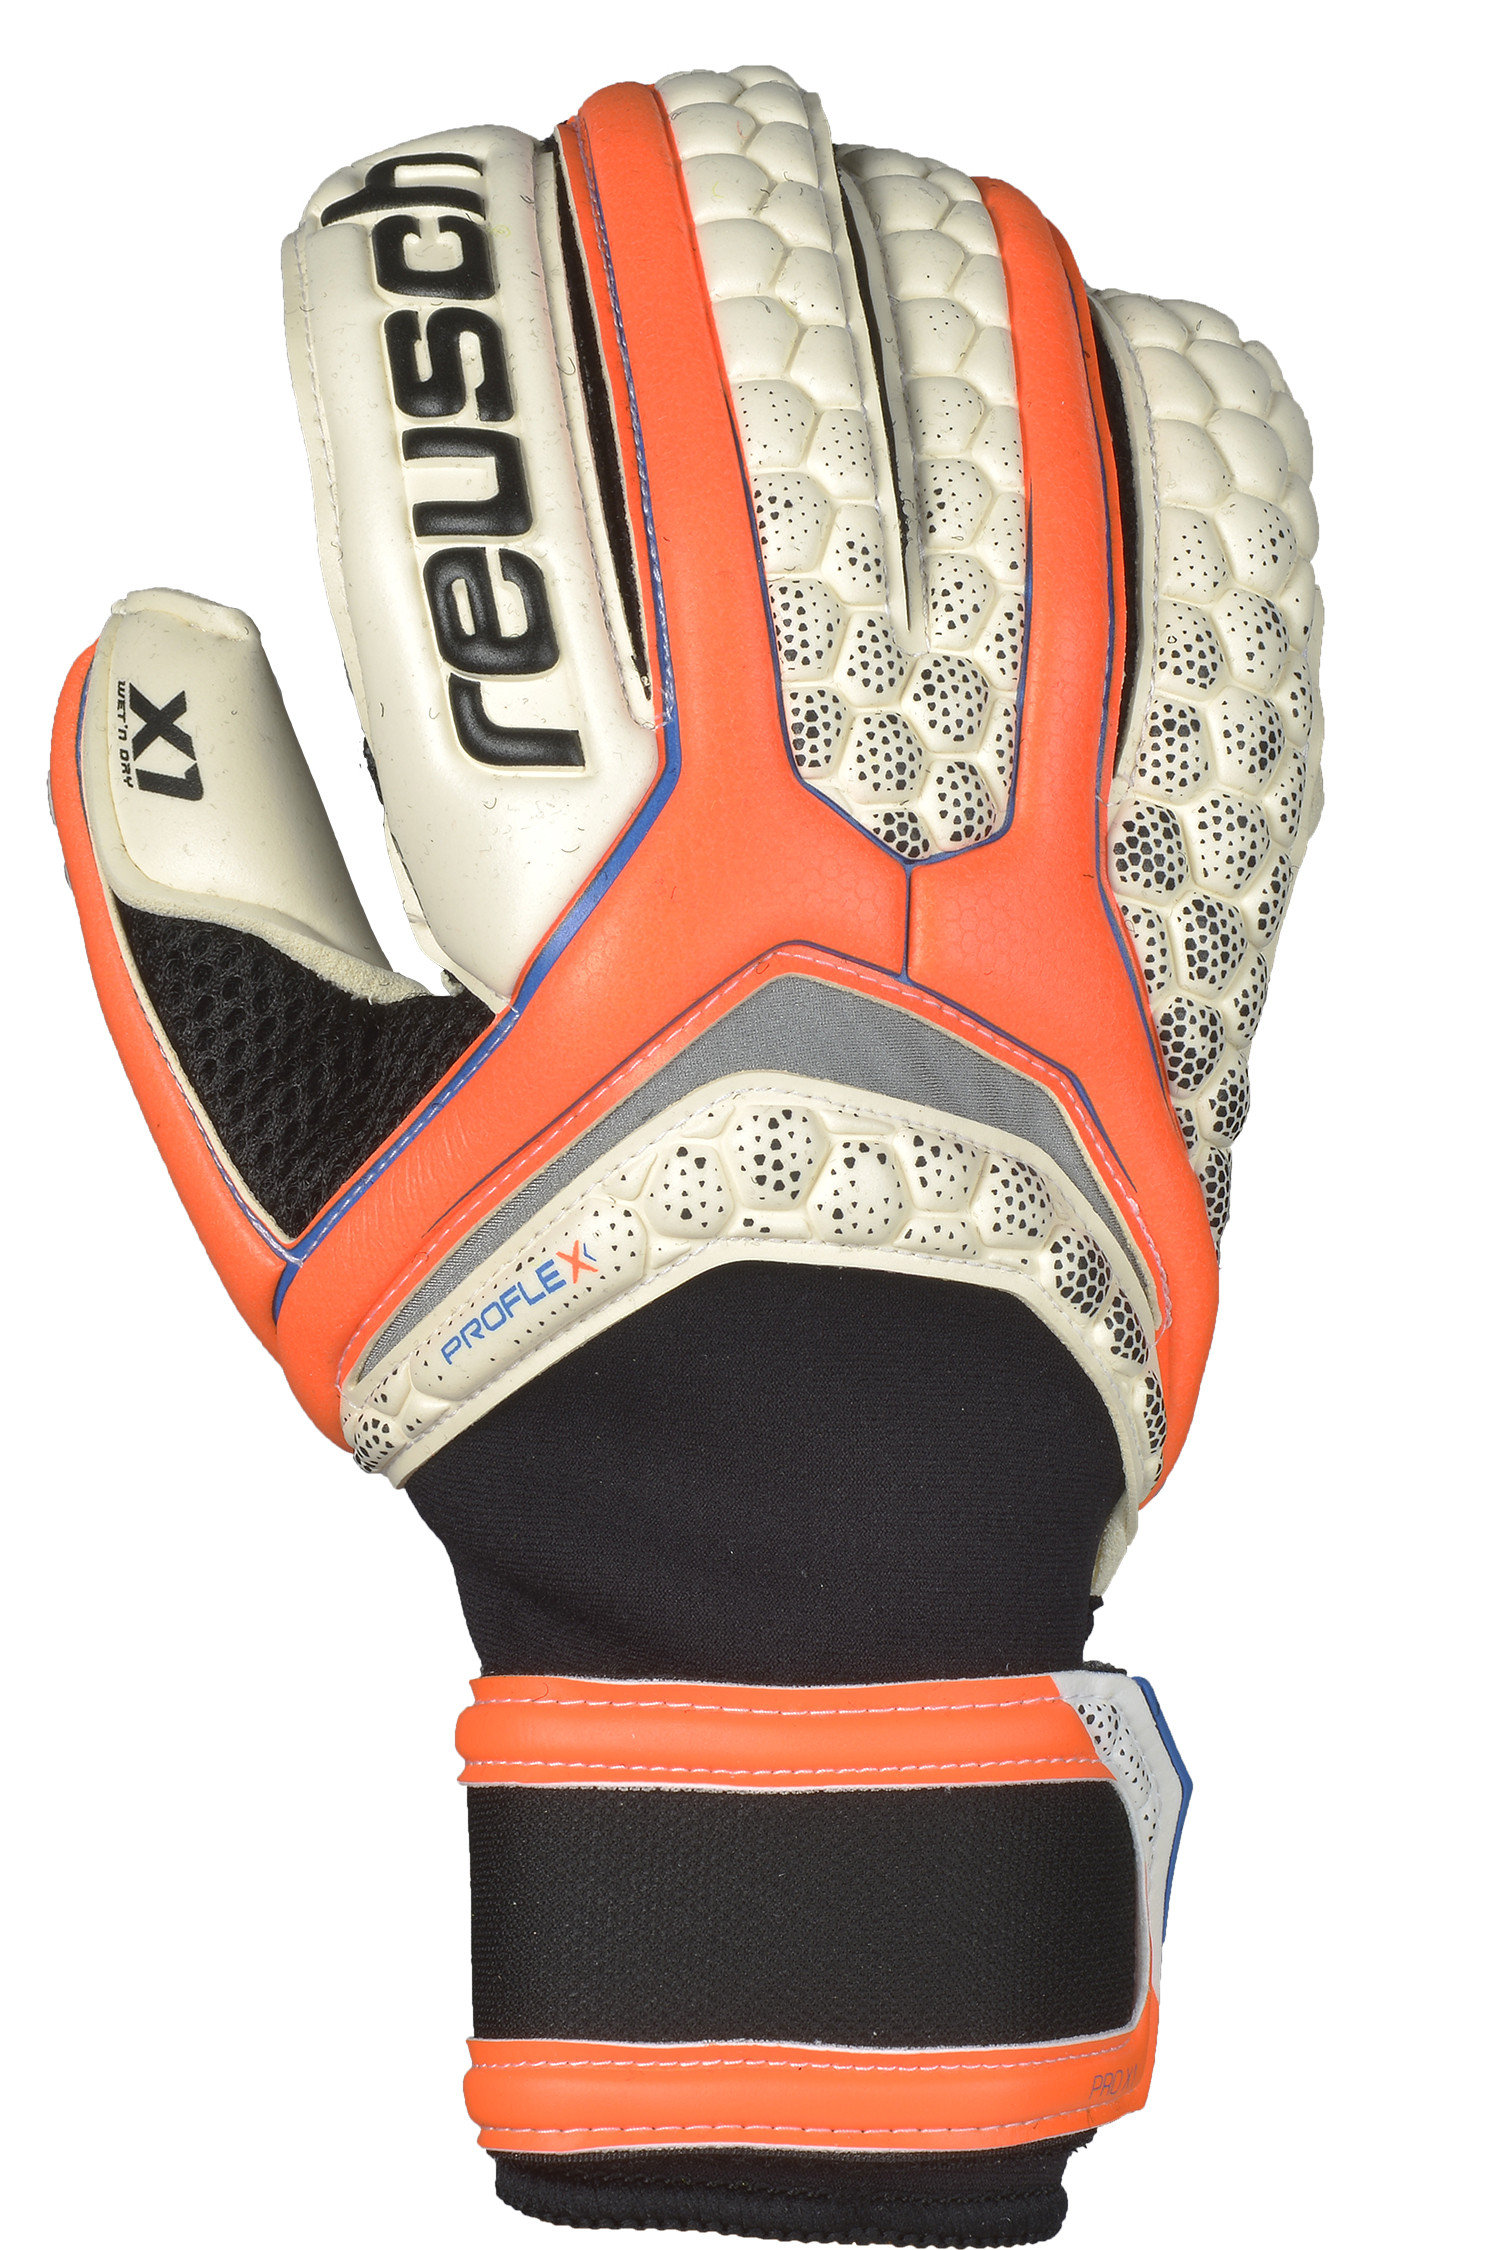 Reusch Re:Pulse Pro X1